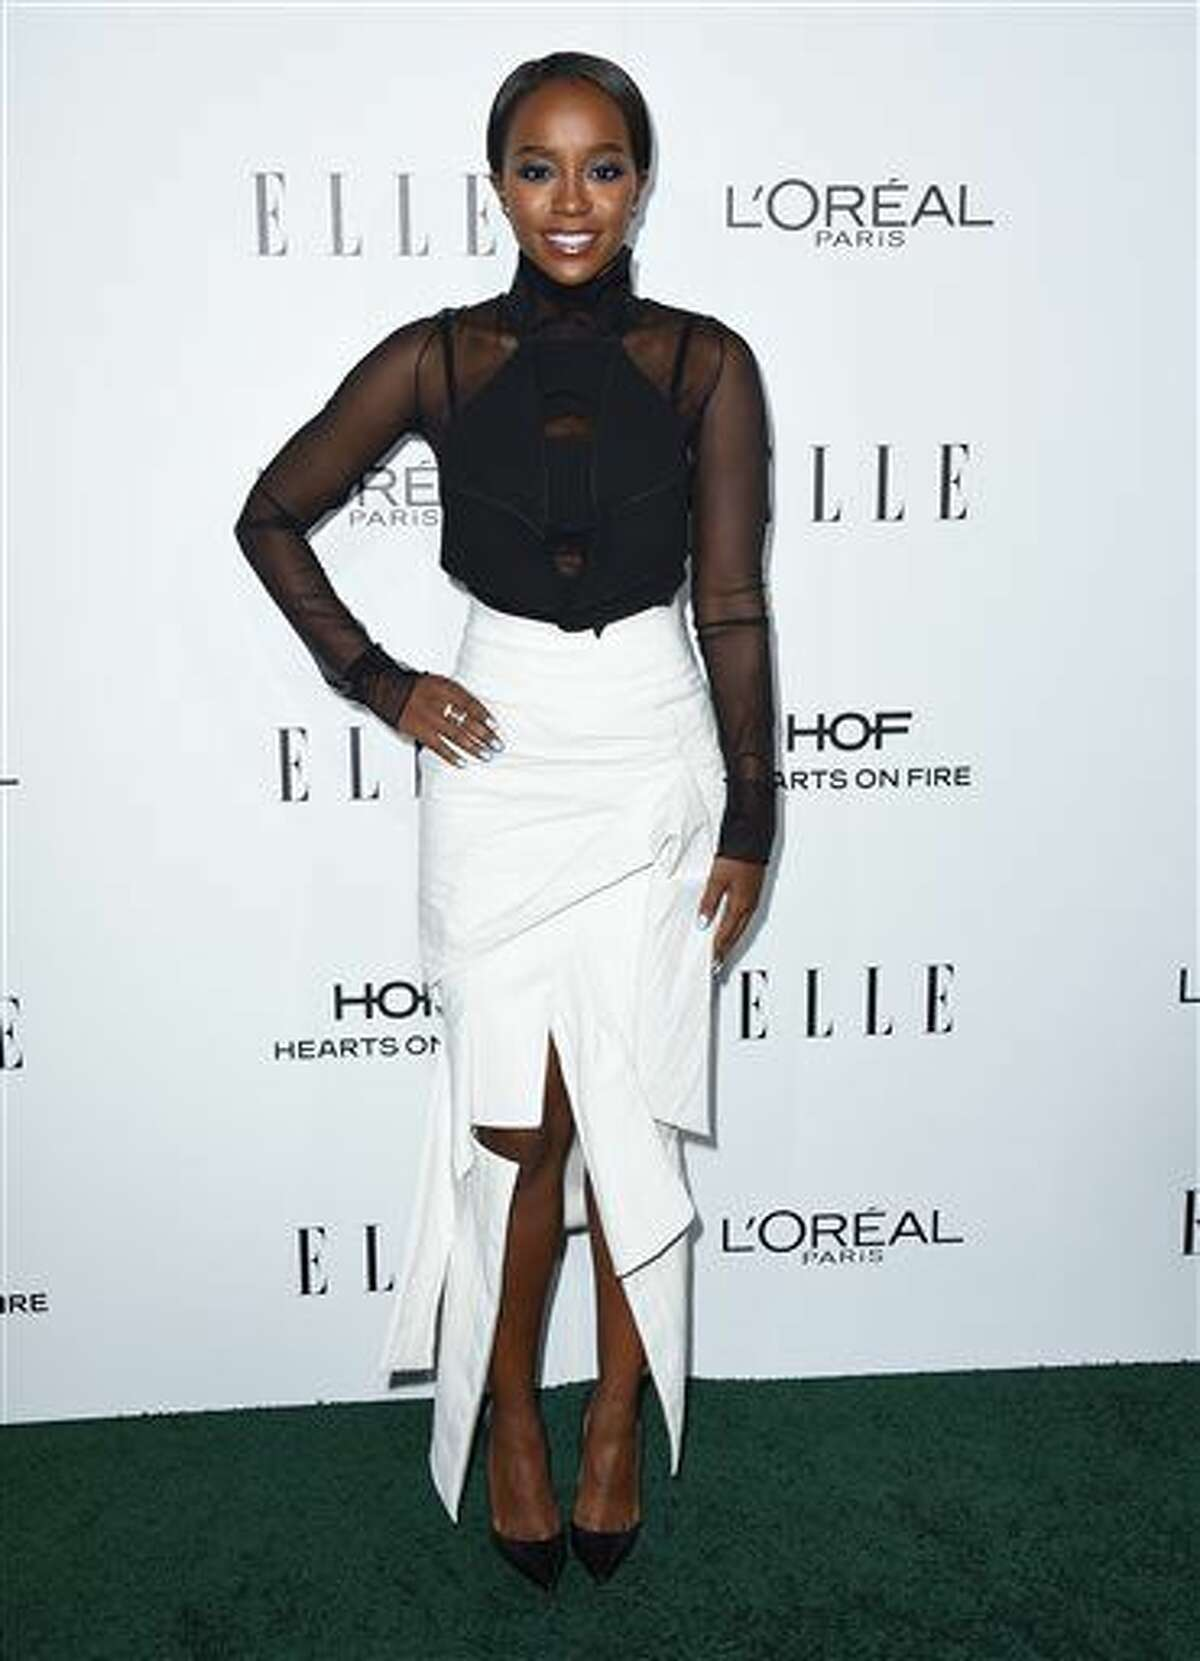 Aja Naomi King arrives at the 23rd annual ELLE Women in Hollywood Awards at the Four Season Hotel on Monday, Oct. 24, 2016, in Los Angeles. (Photo by Jordan Strauss/Invision/AP)